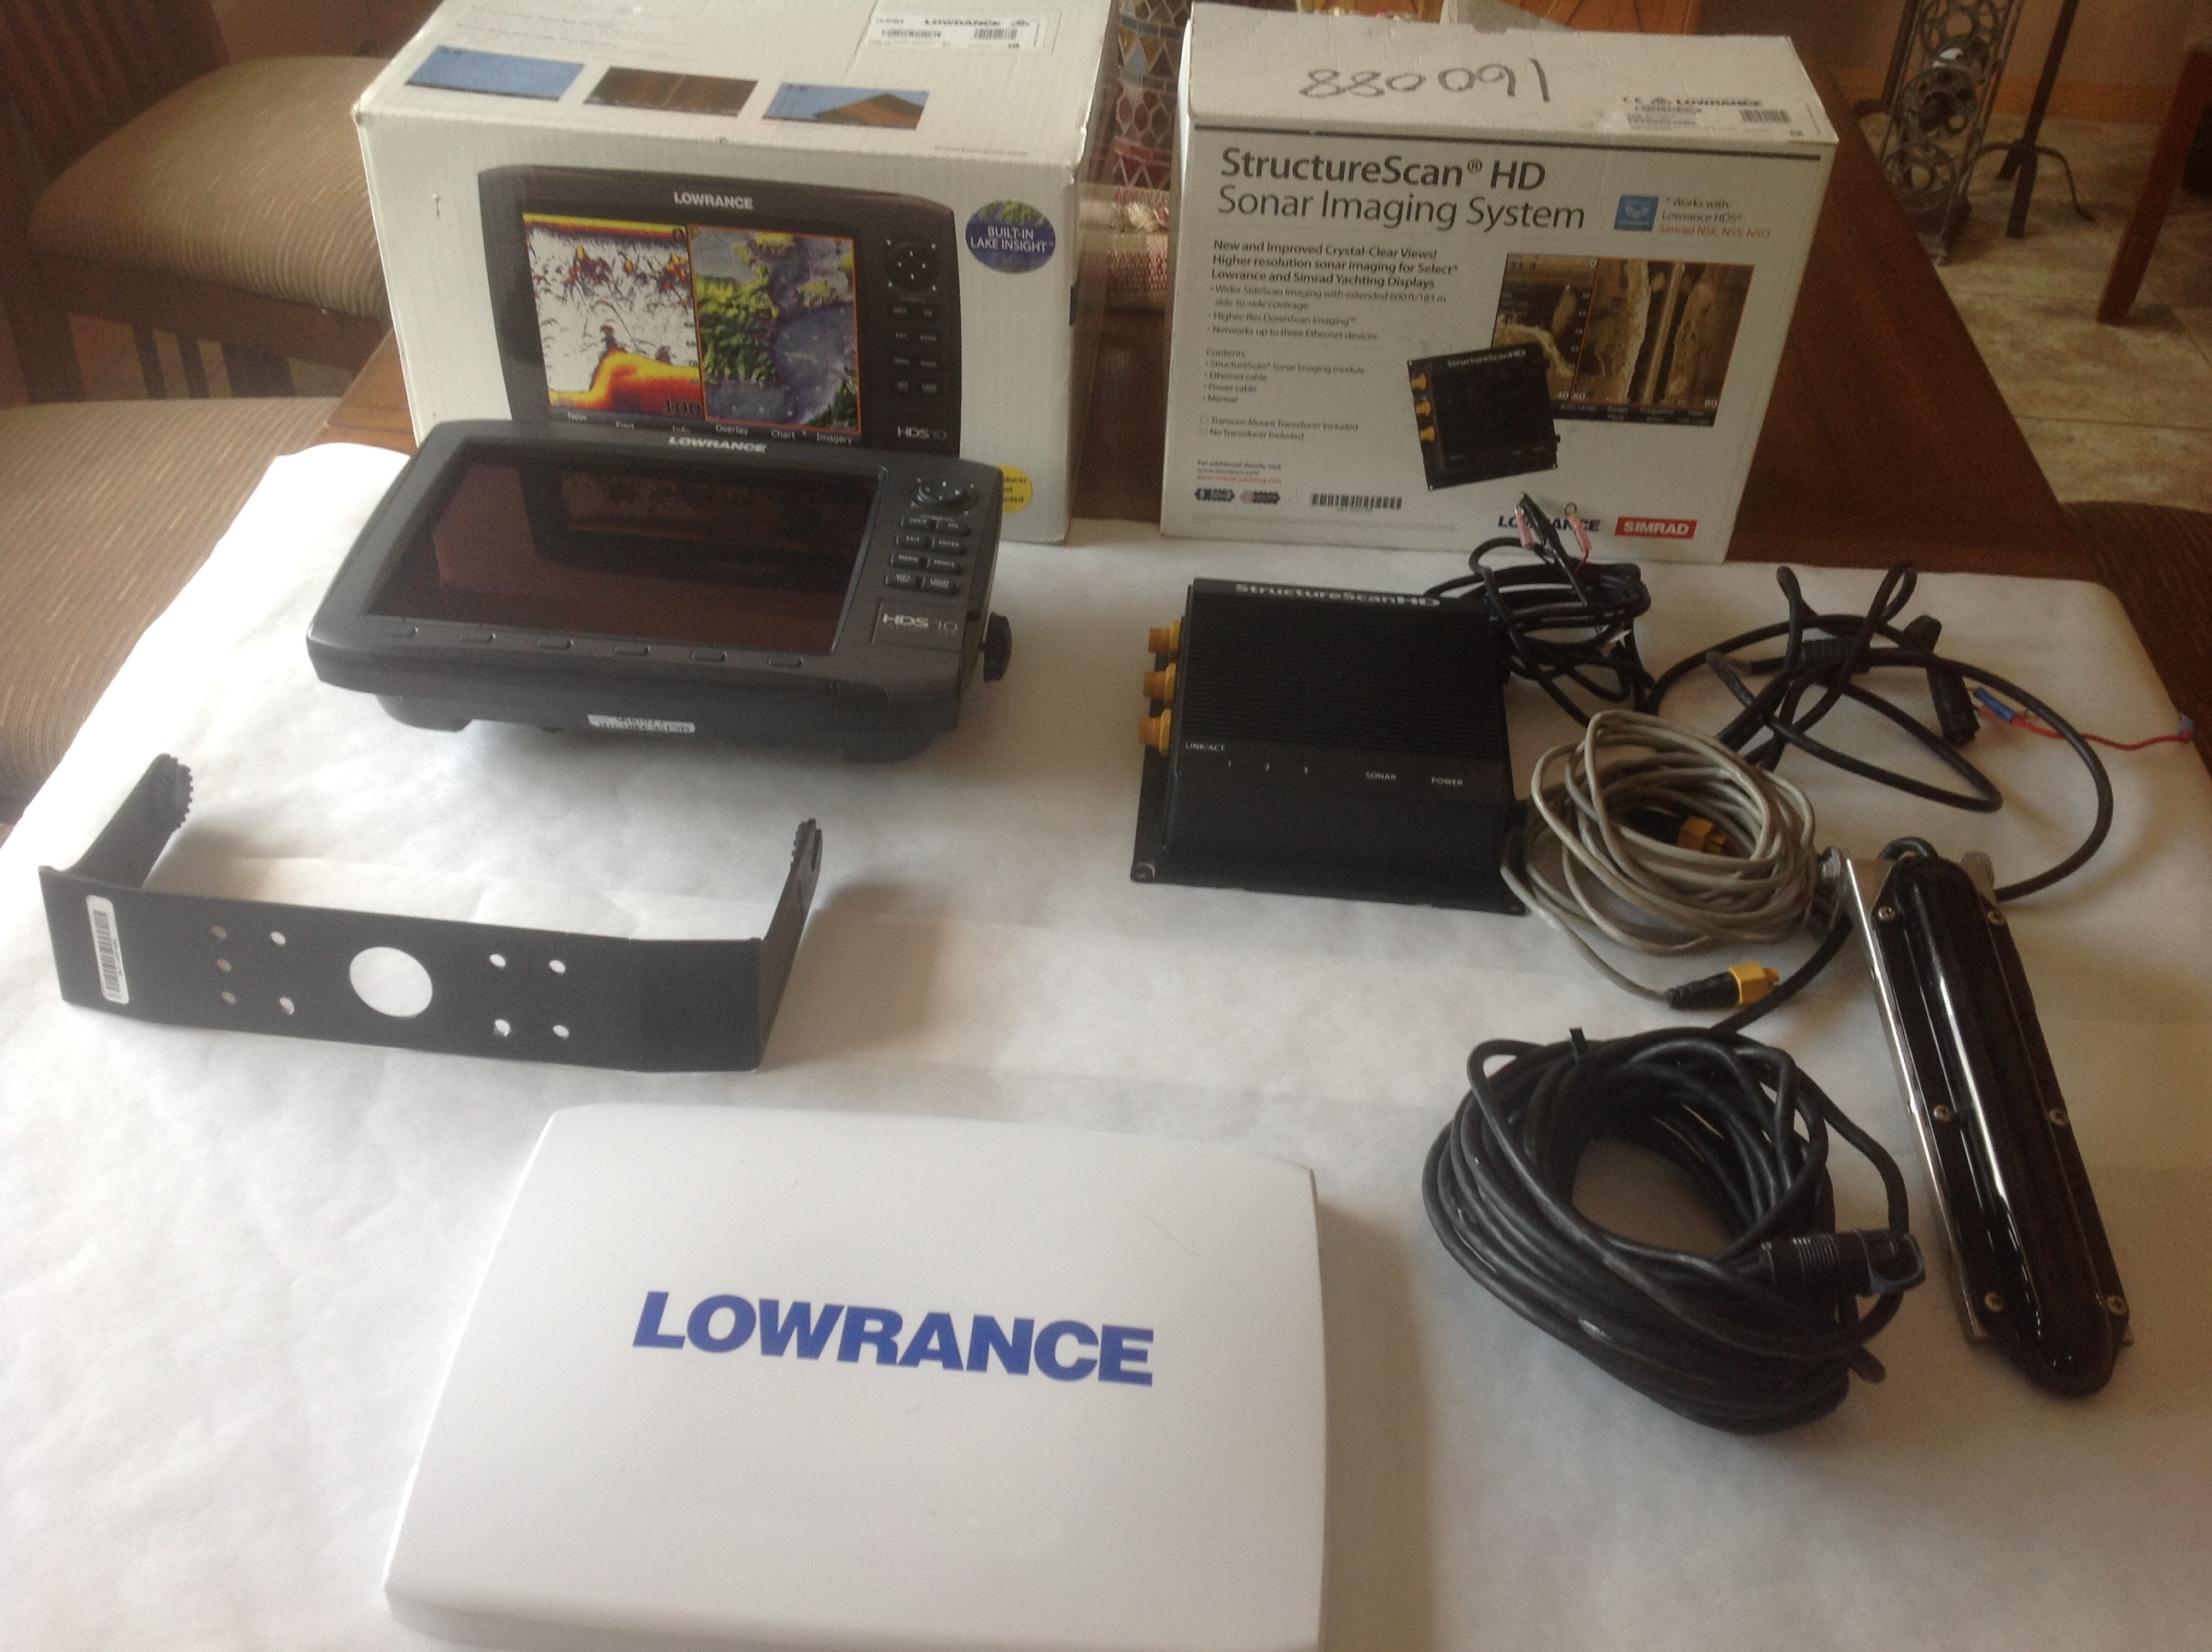 Lowrance HDS 10 gen 2 with Structure Scan - Classified Ads